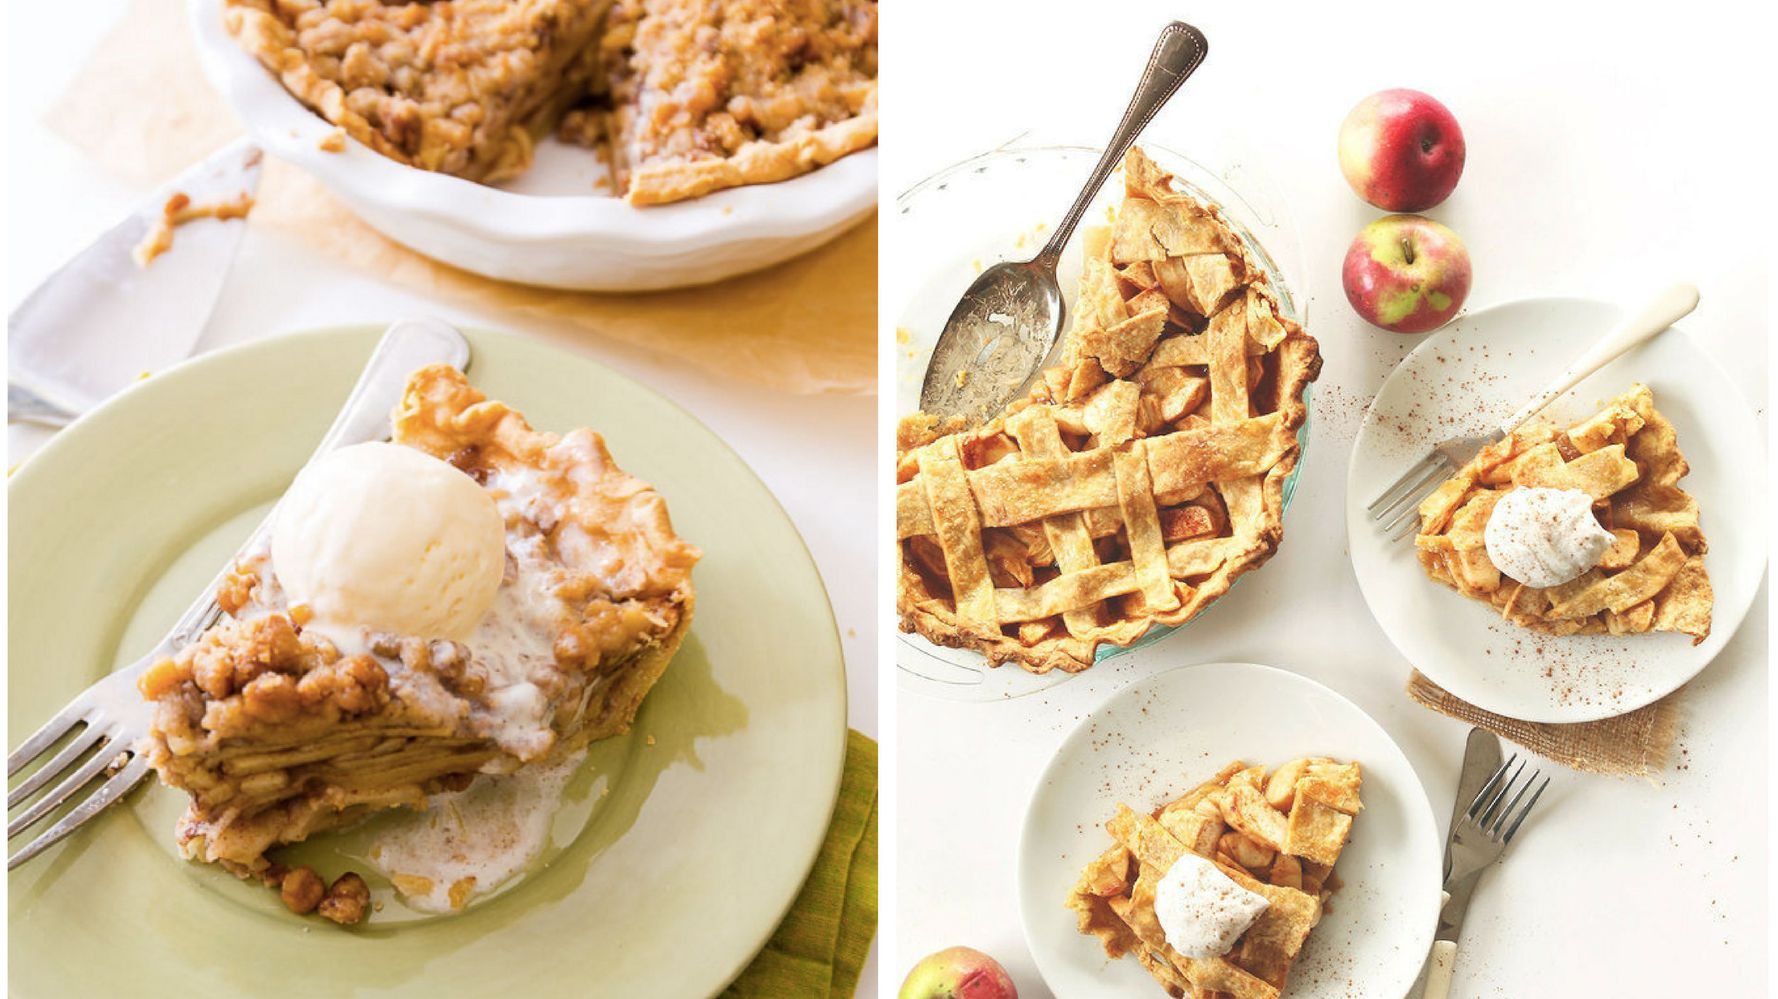 Apple Pie Recipes That Are Better Than Grandma's